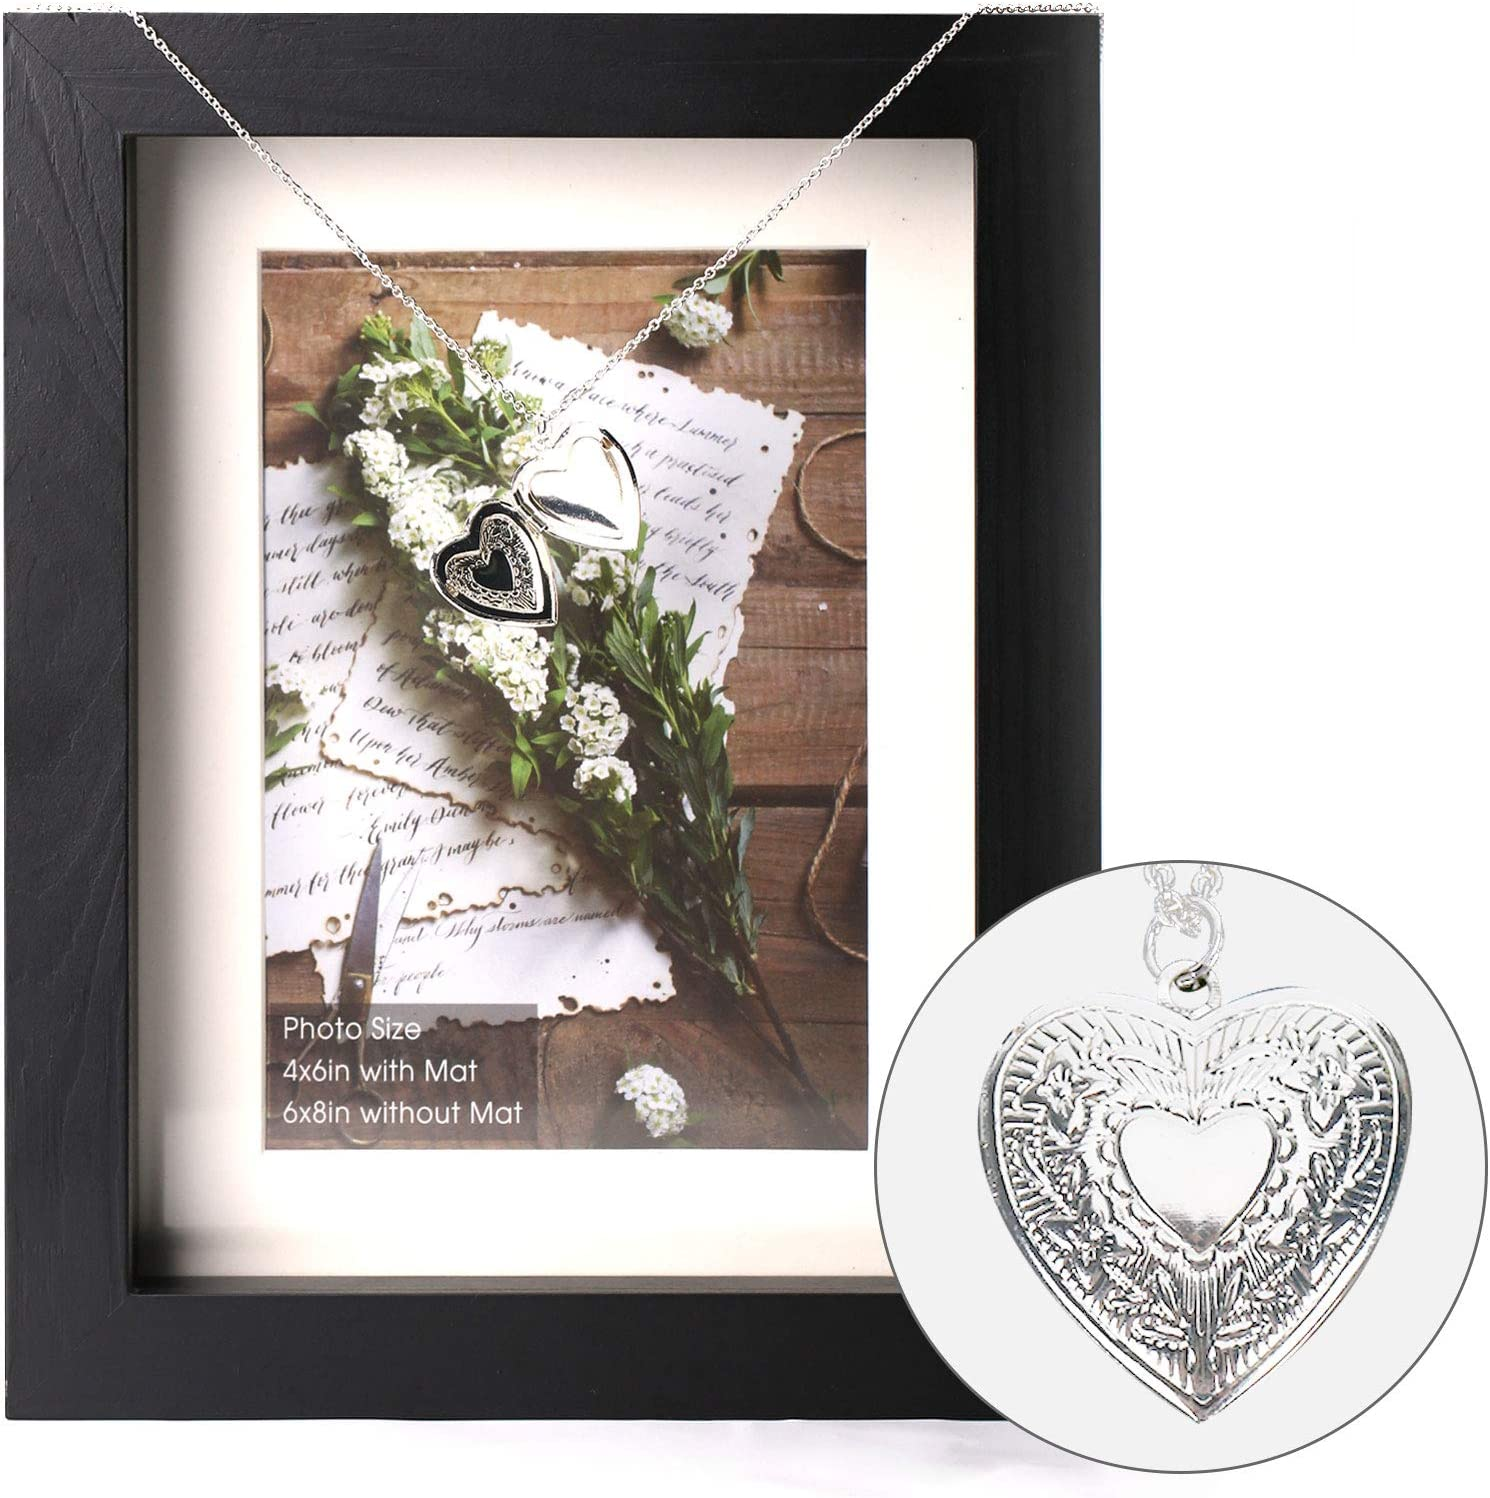 PR PeakRous Black Shadow Box Pictures Frame in Loving Memory Hanging Photo Deep Box Frames 4x6 with Mat 6x8 Without Mat for Loss of Loved One Tabletop Display Case Jewelry Wall Mount Solid Wood